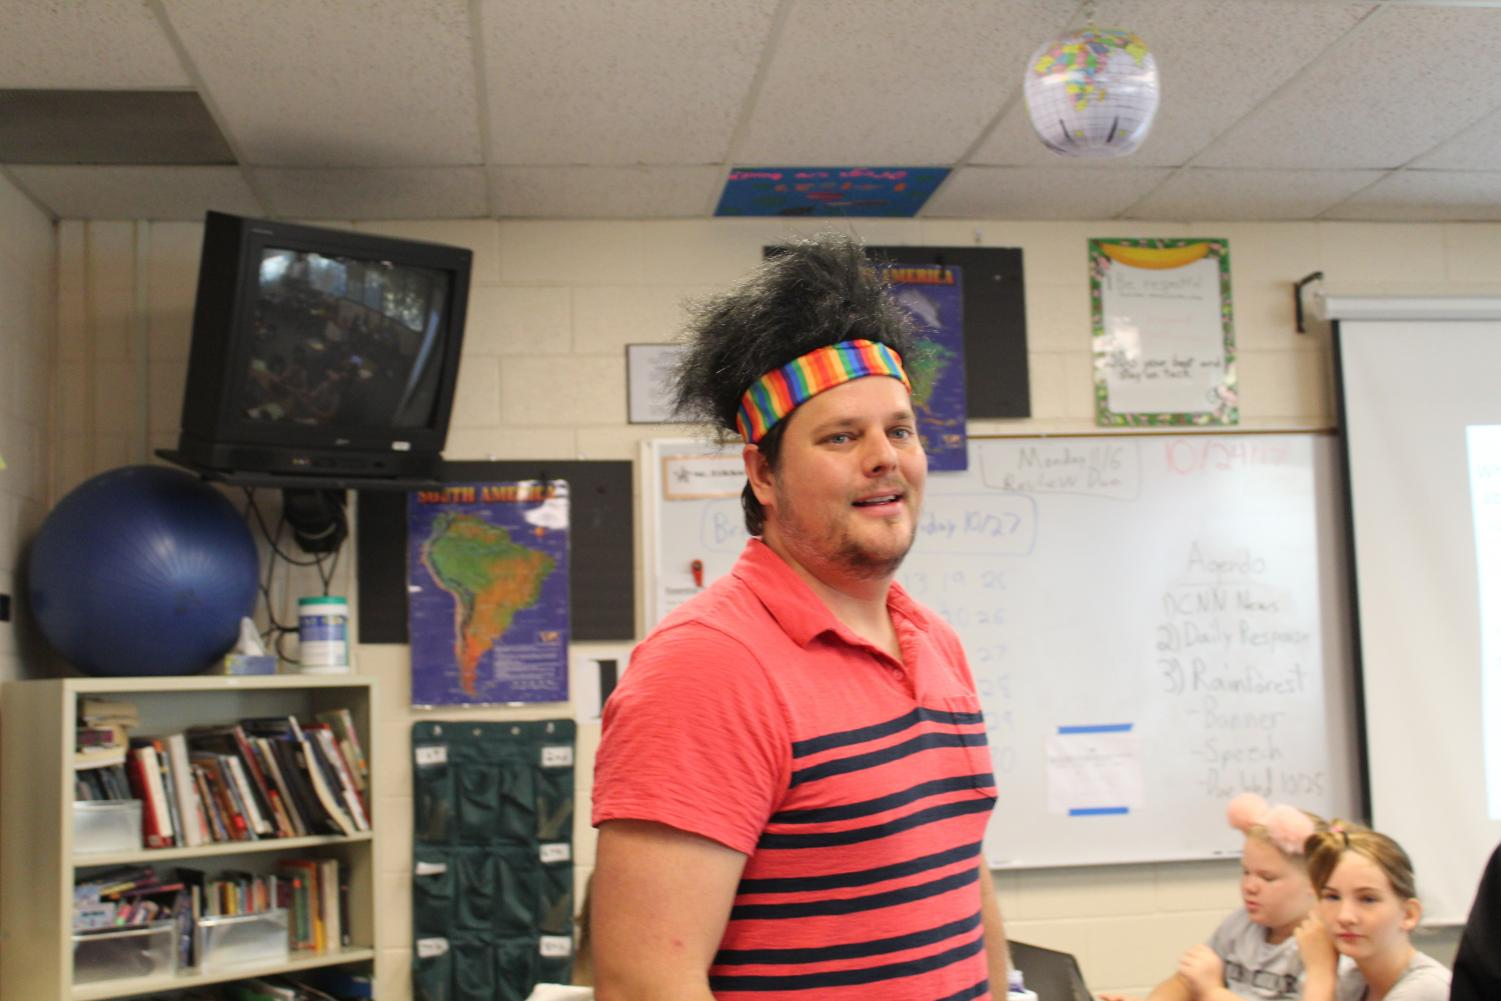 Mr. Erickson is Impressing People With His Crazy Hair!